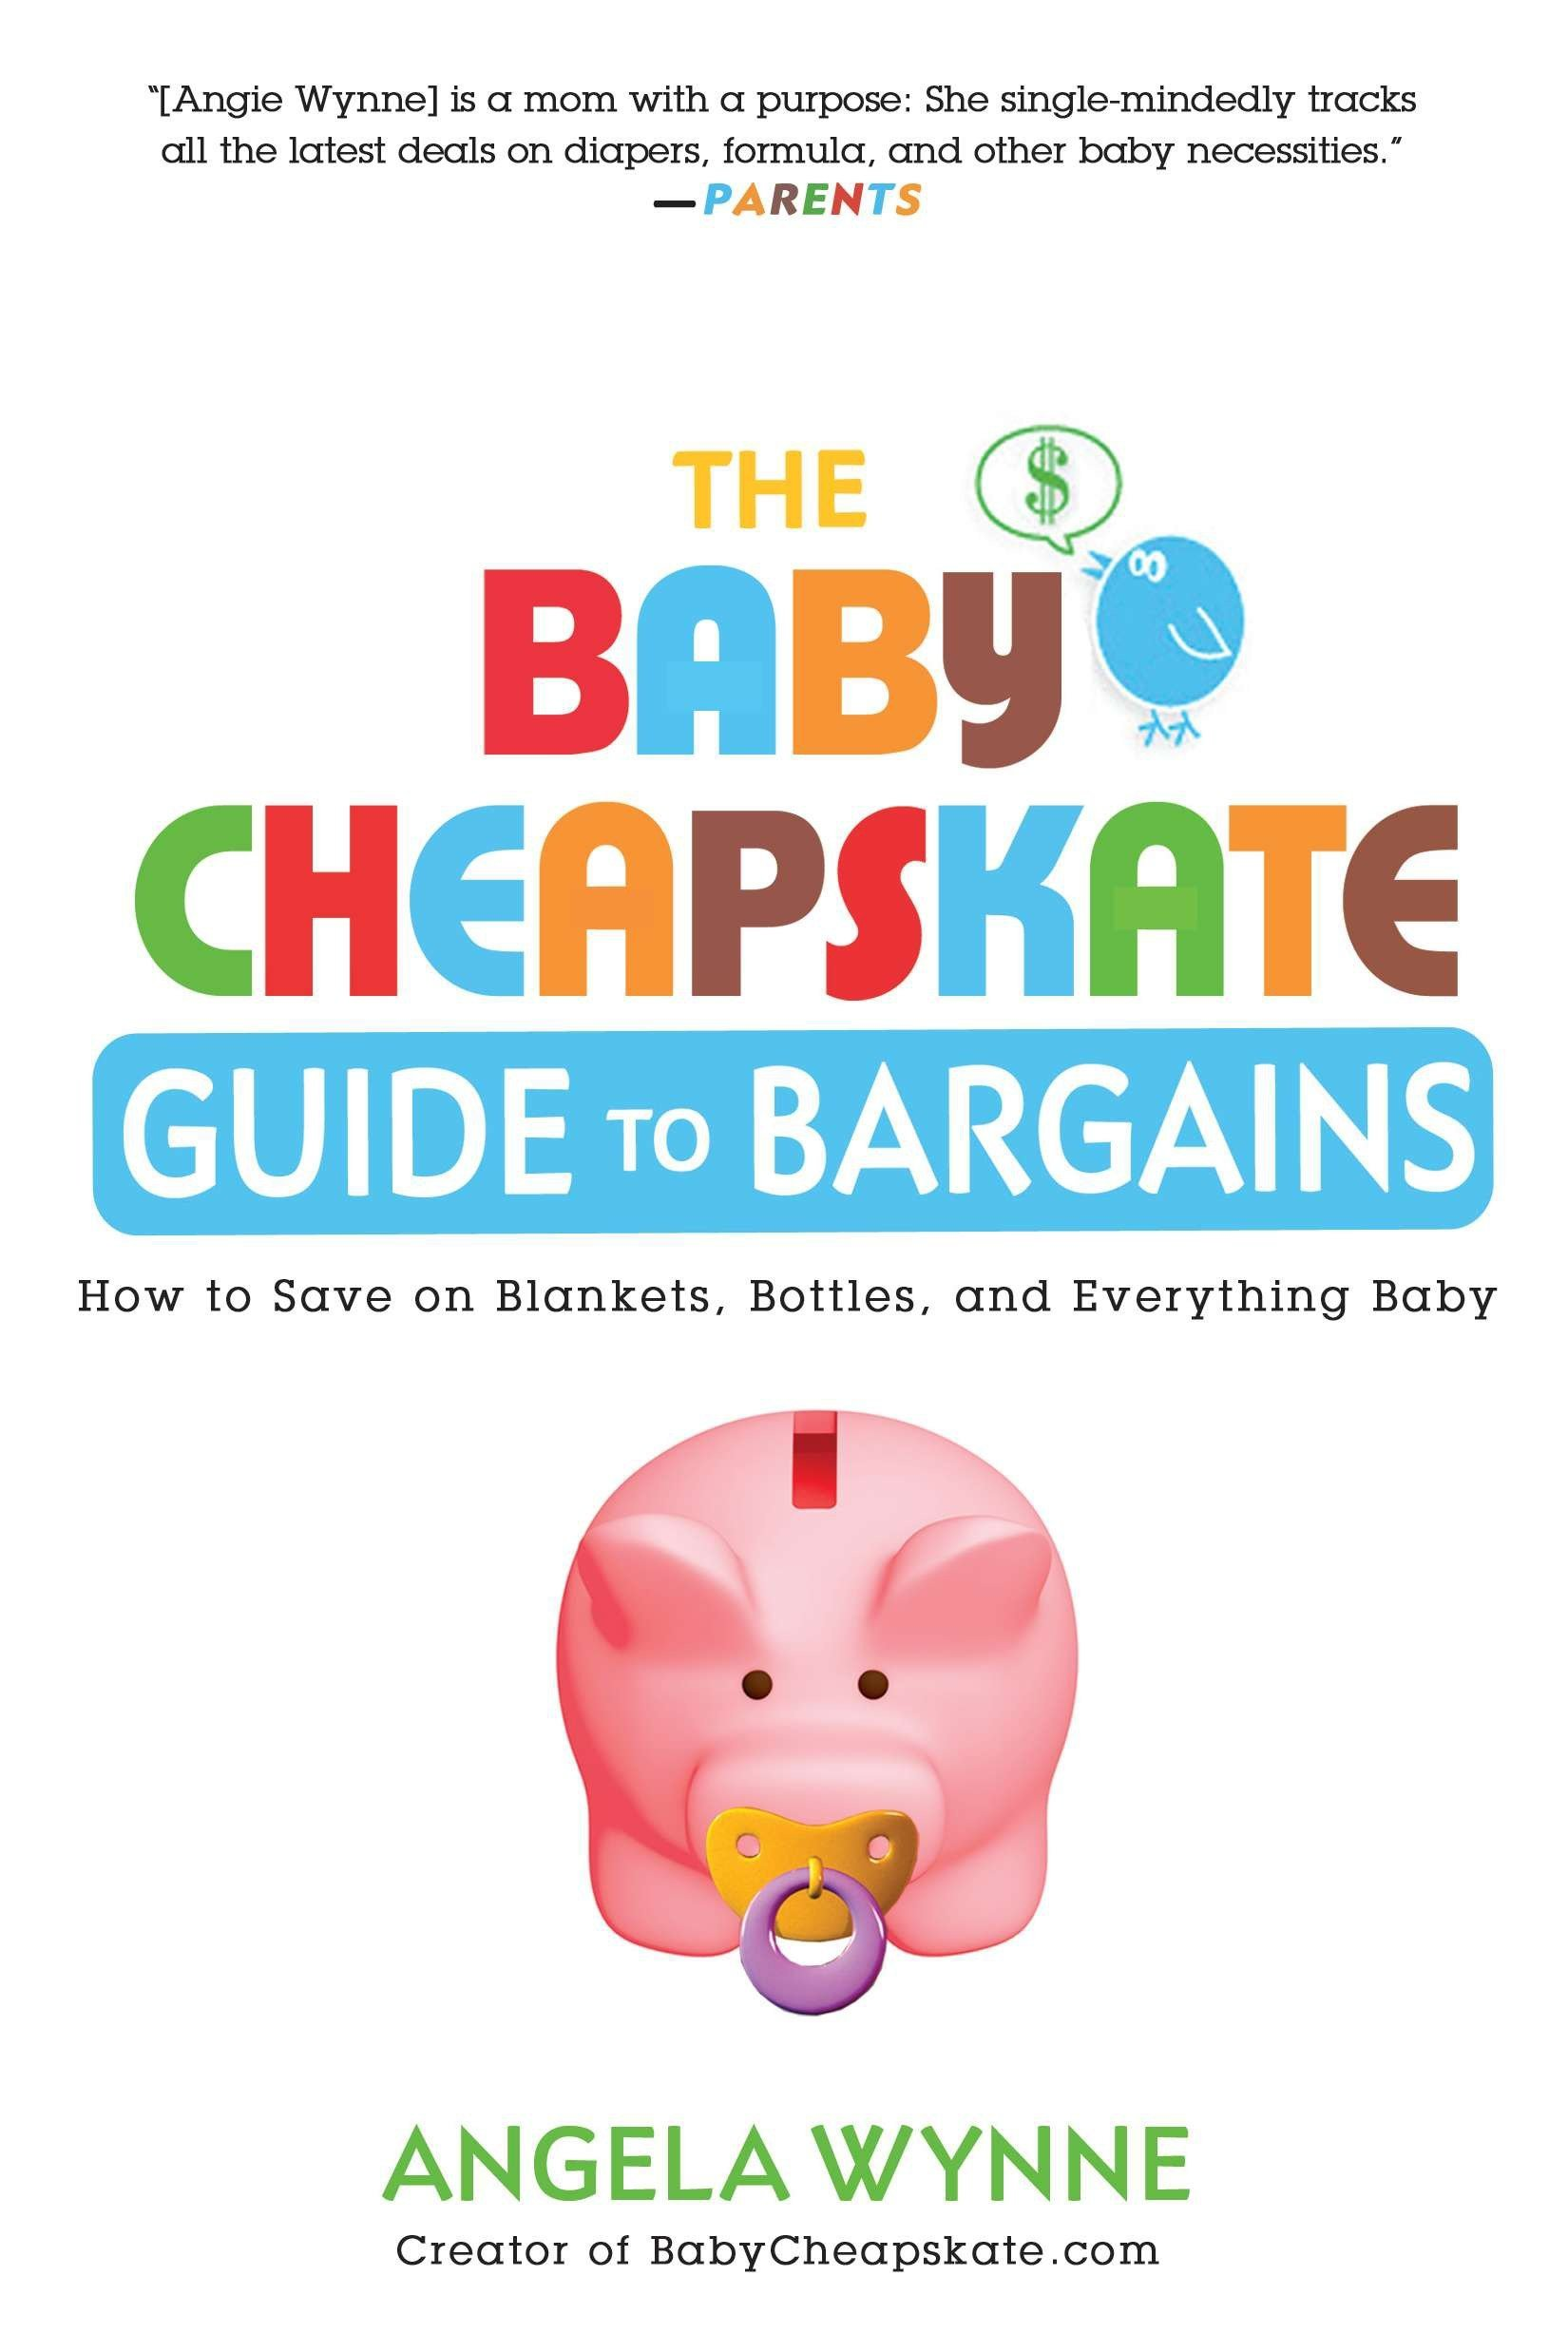 The Baby Cheapskate Guide to Bargains: How to Save on Blankets, Bottles, and Everything Baby ebook